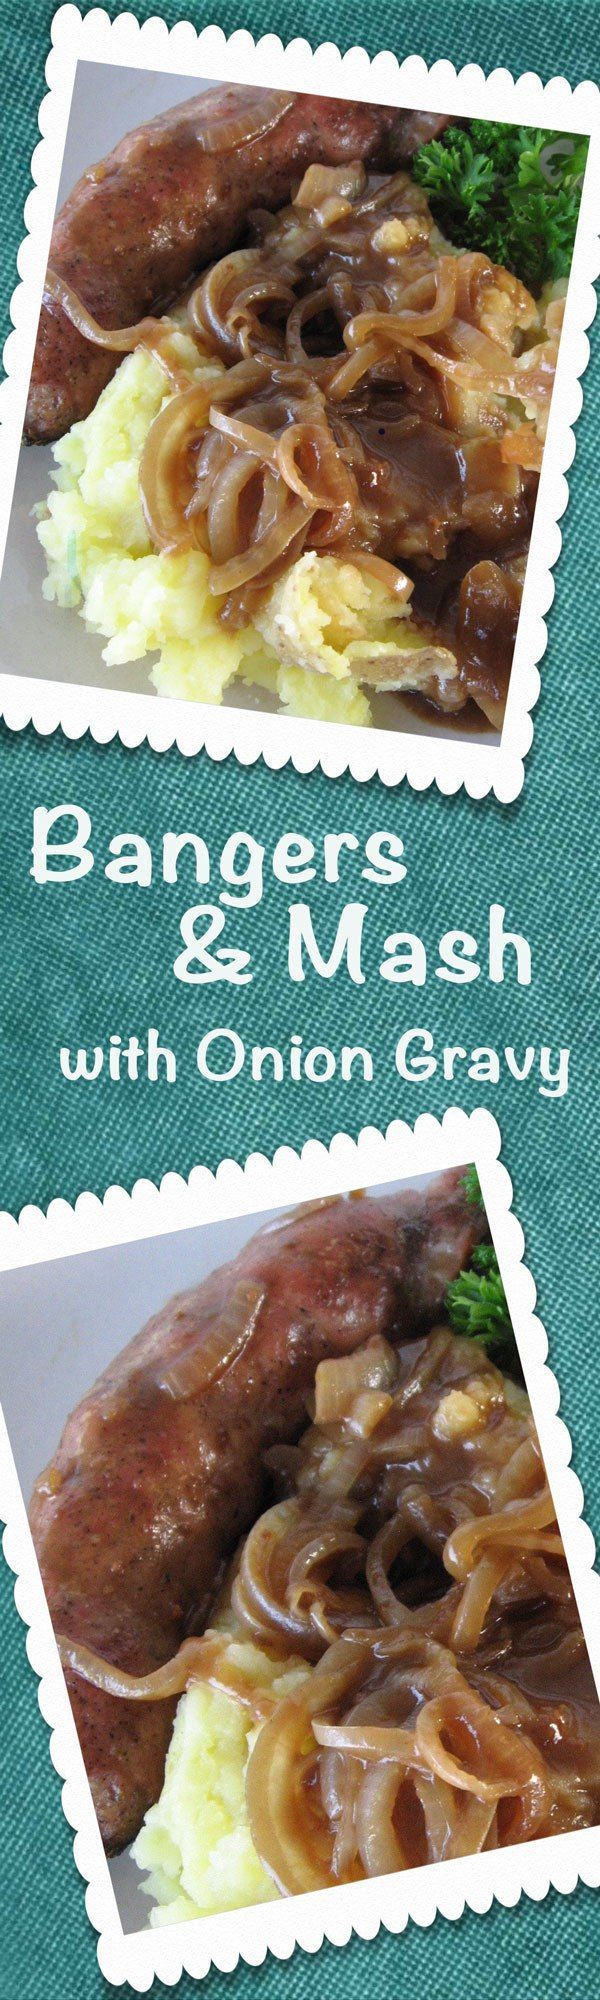 Bangers & Mash with Onion Gravy is a traditional U.K. recipe with sausages and mashed potatoes that is simple, delicious and filling...real comfort food!